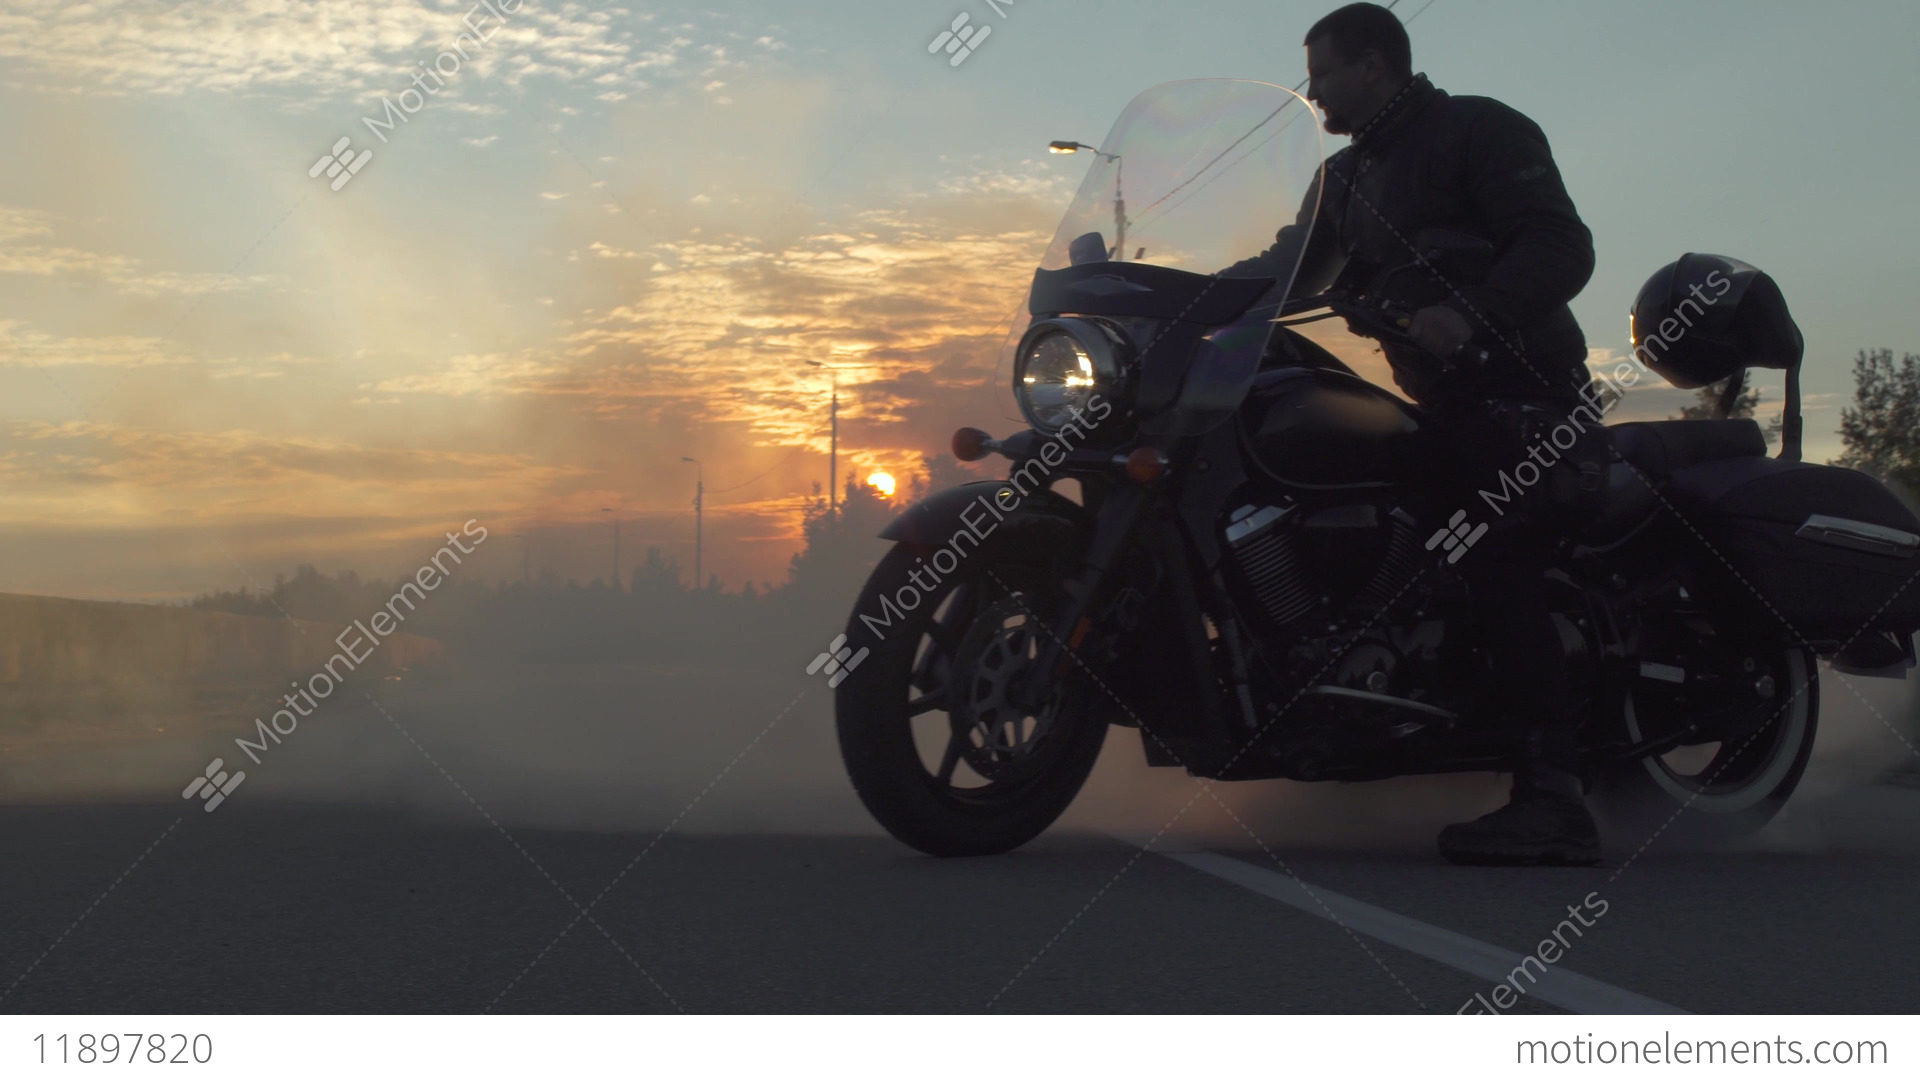 motorcycle background p  Biker Create A Lot Of Smoke With A Motorcycle On The Road, Sunset At ...